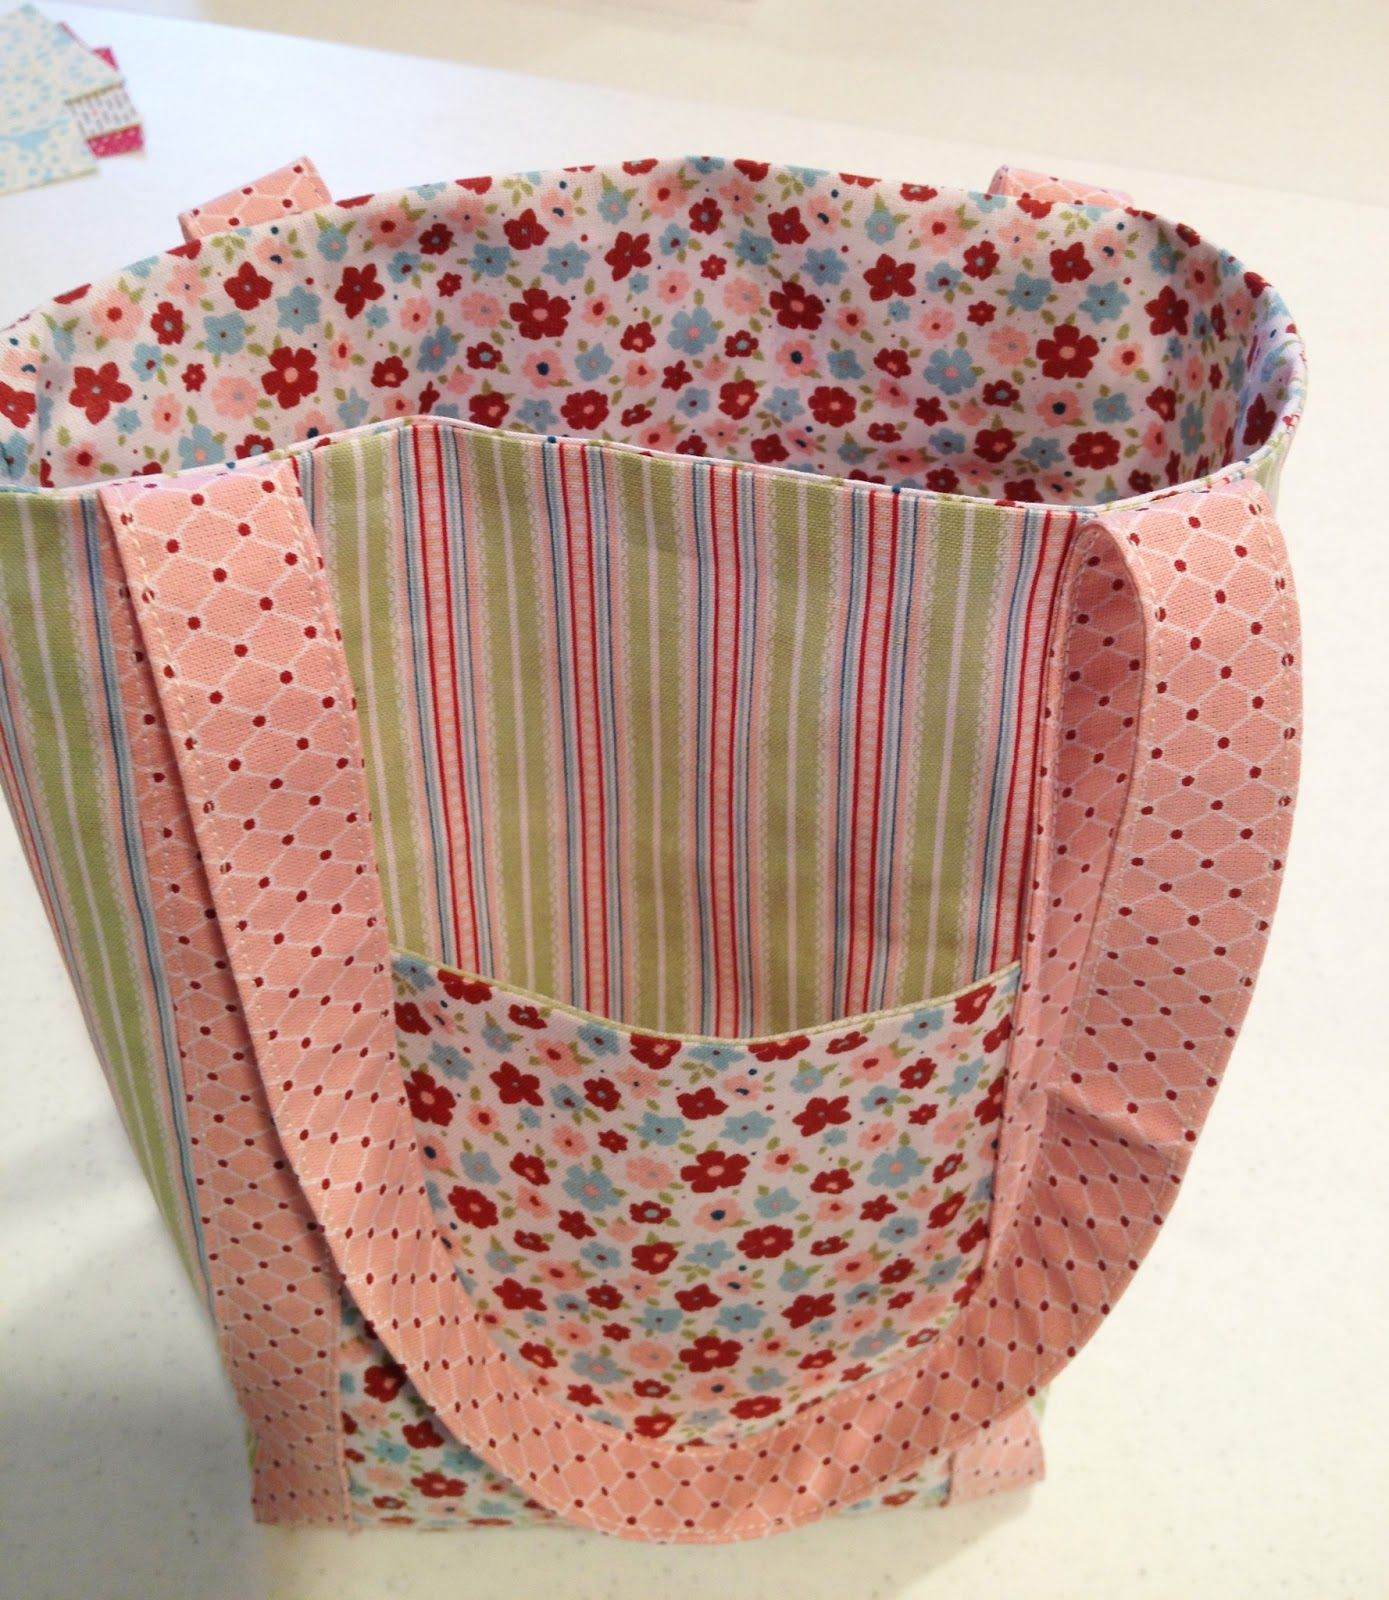 Diy Fat Quarter Projects From My Pad To Yours Fabric Frenzy Fat Quarter Tote